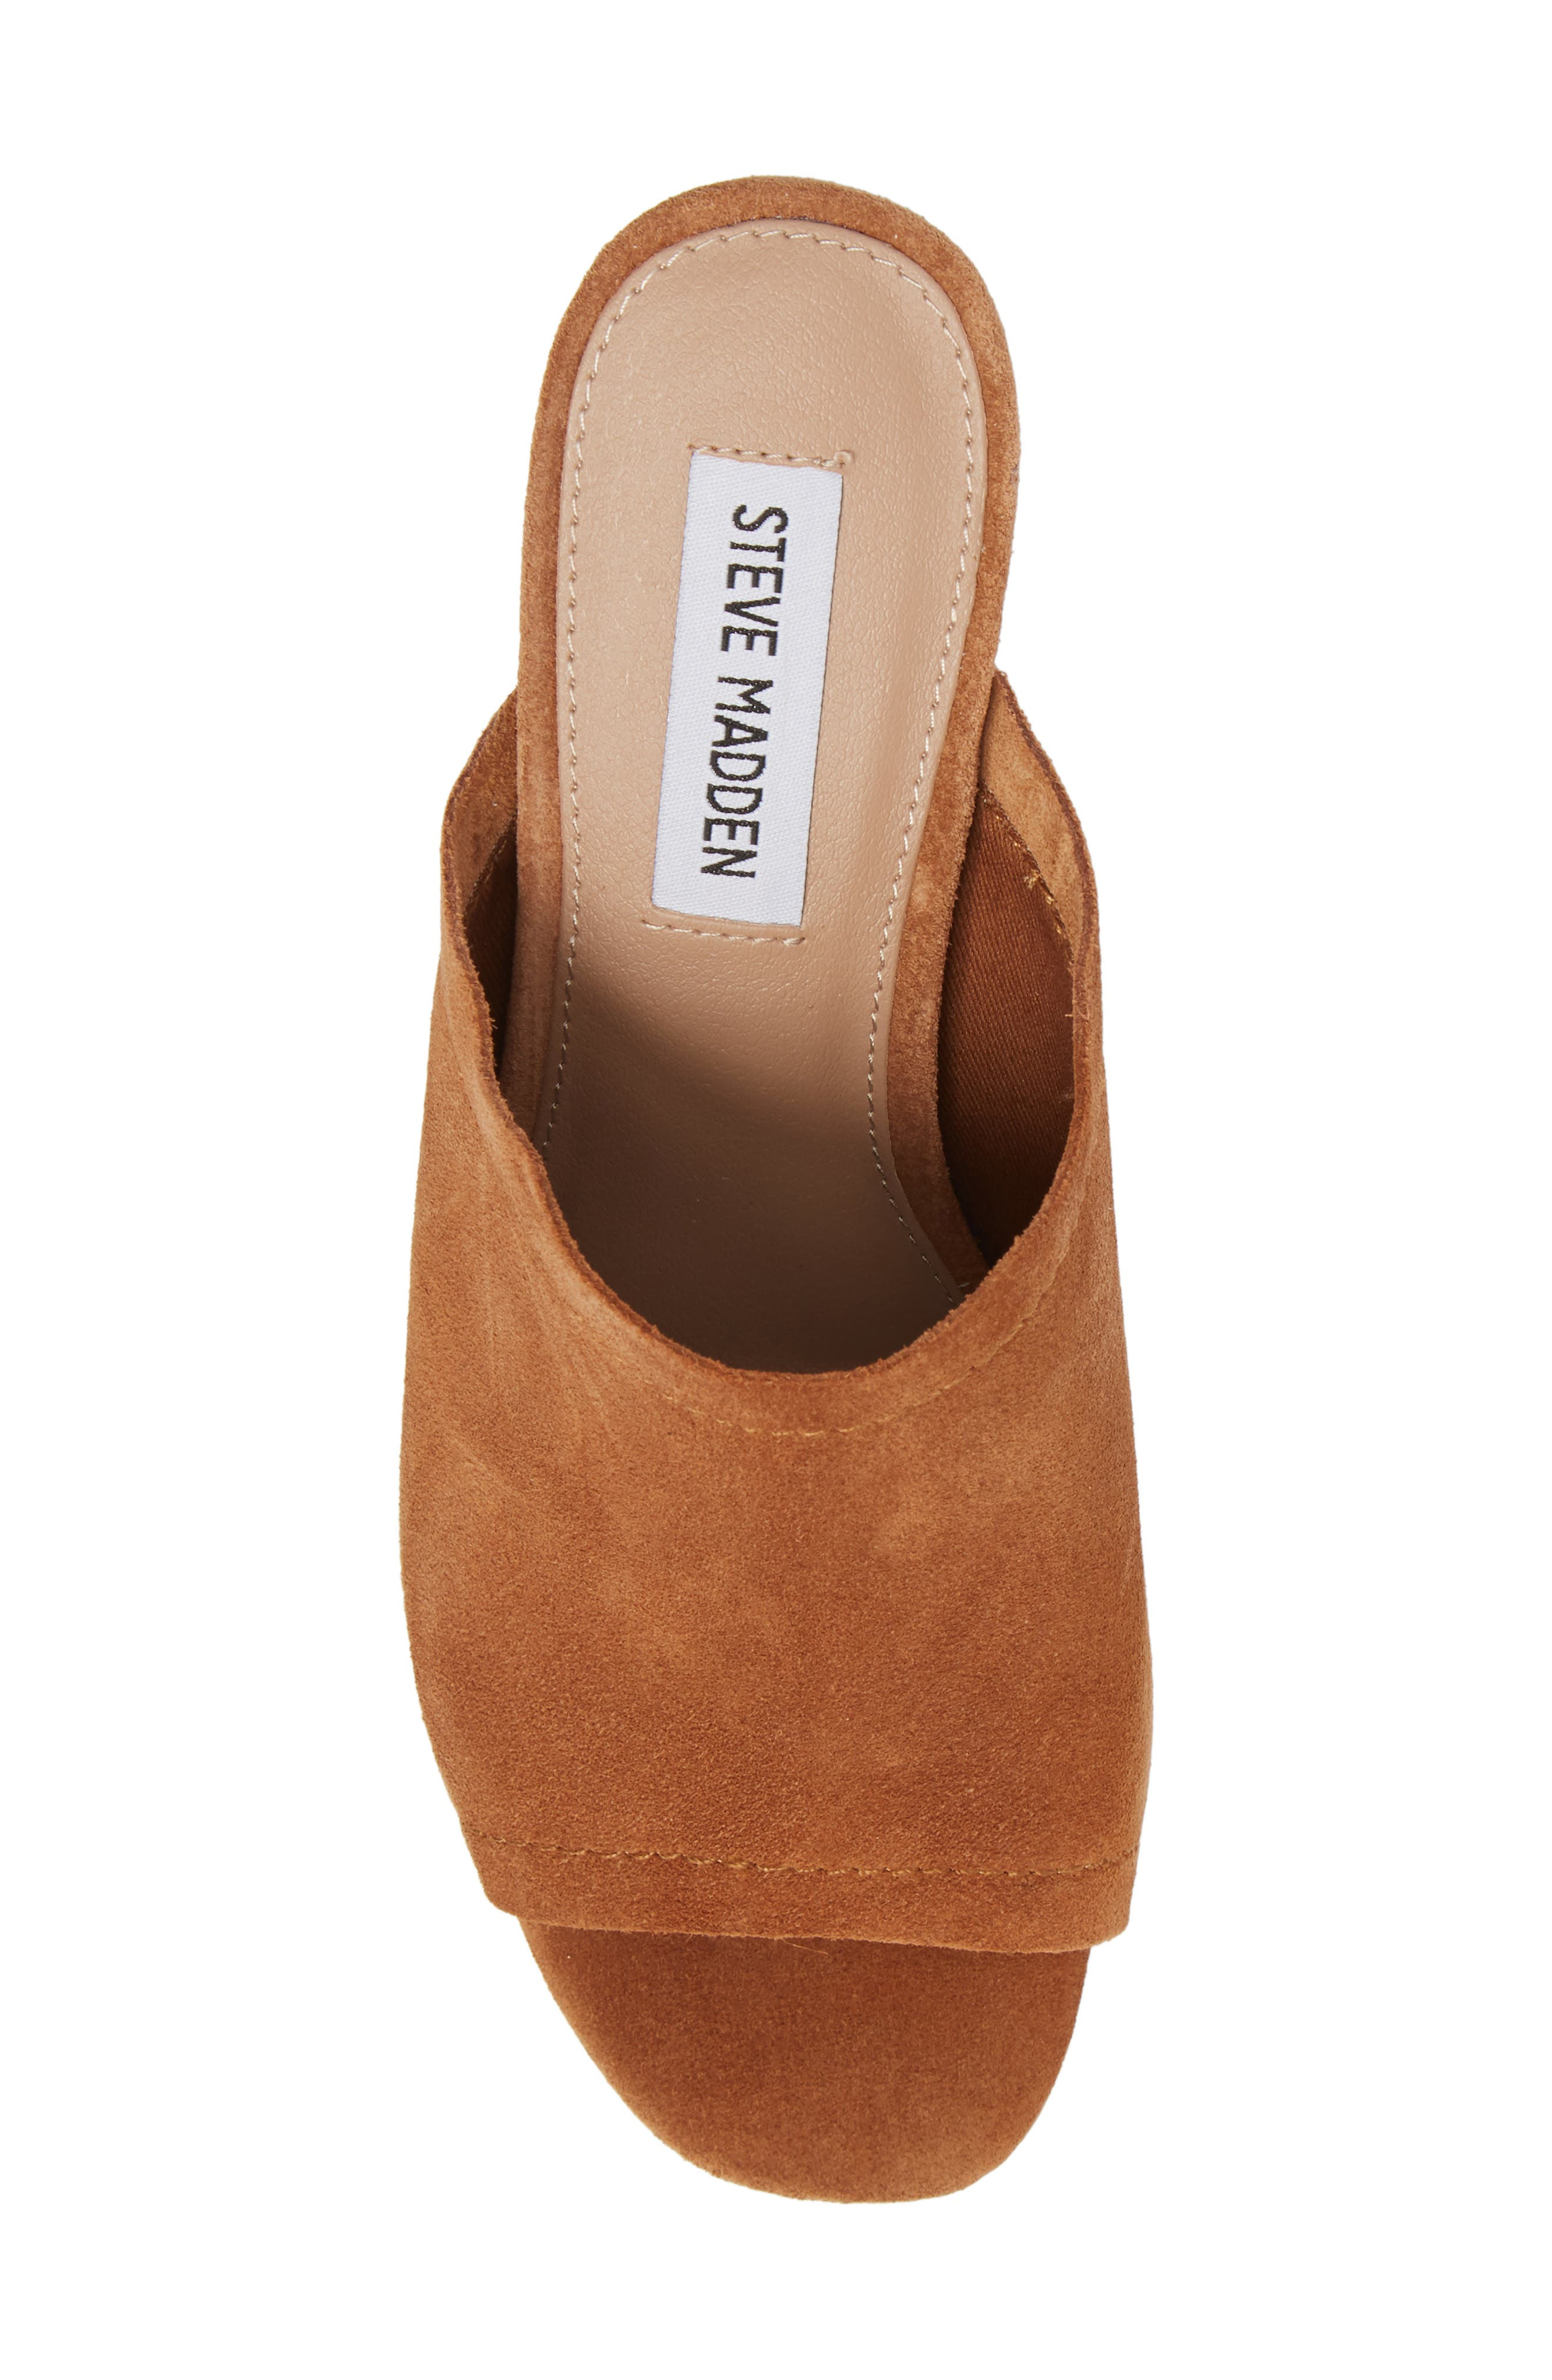 Doran Mule Sandal,                             Alternate thumbnail 5, color,                             CHESTNUT SUEDE